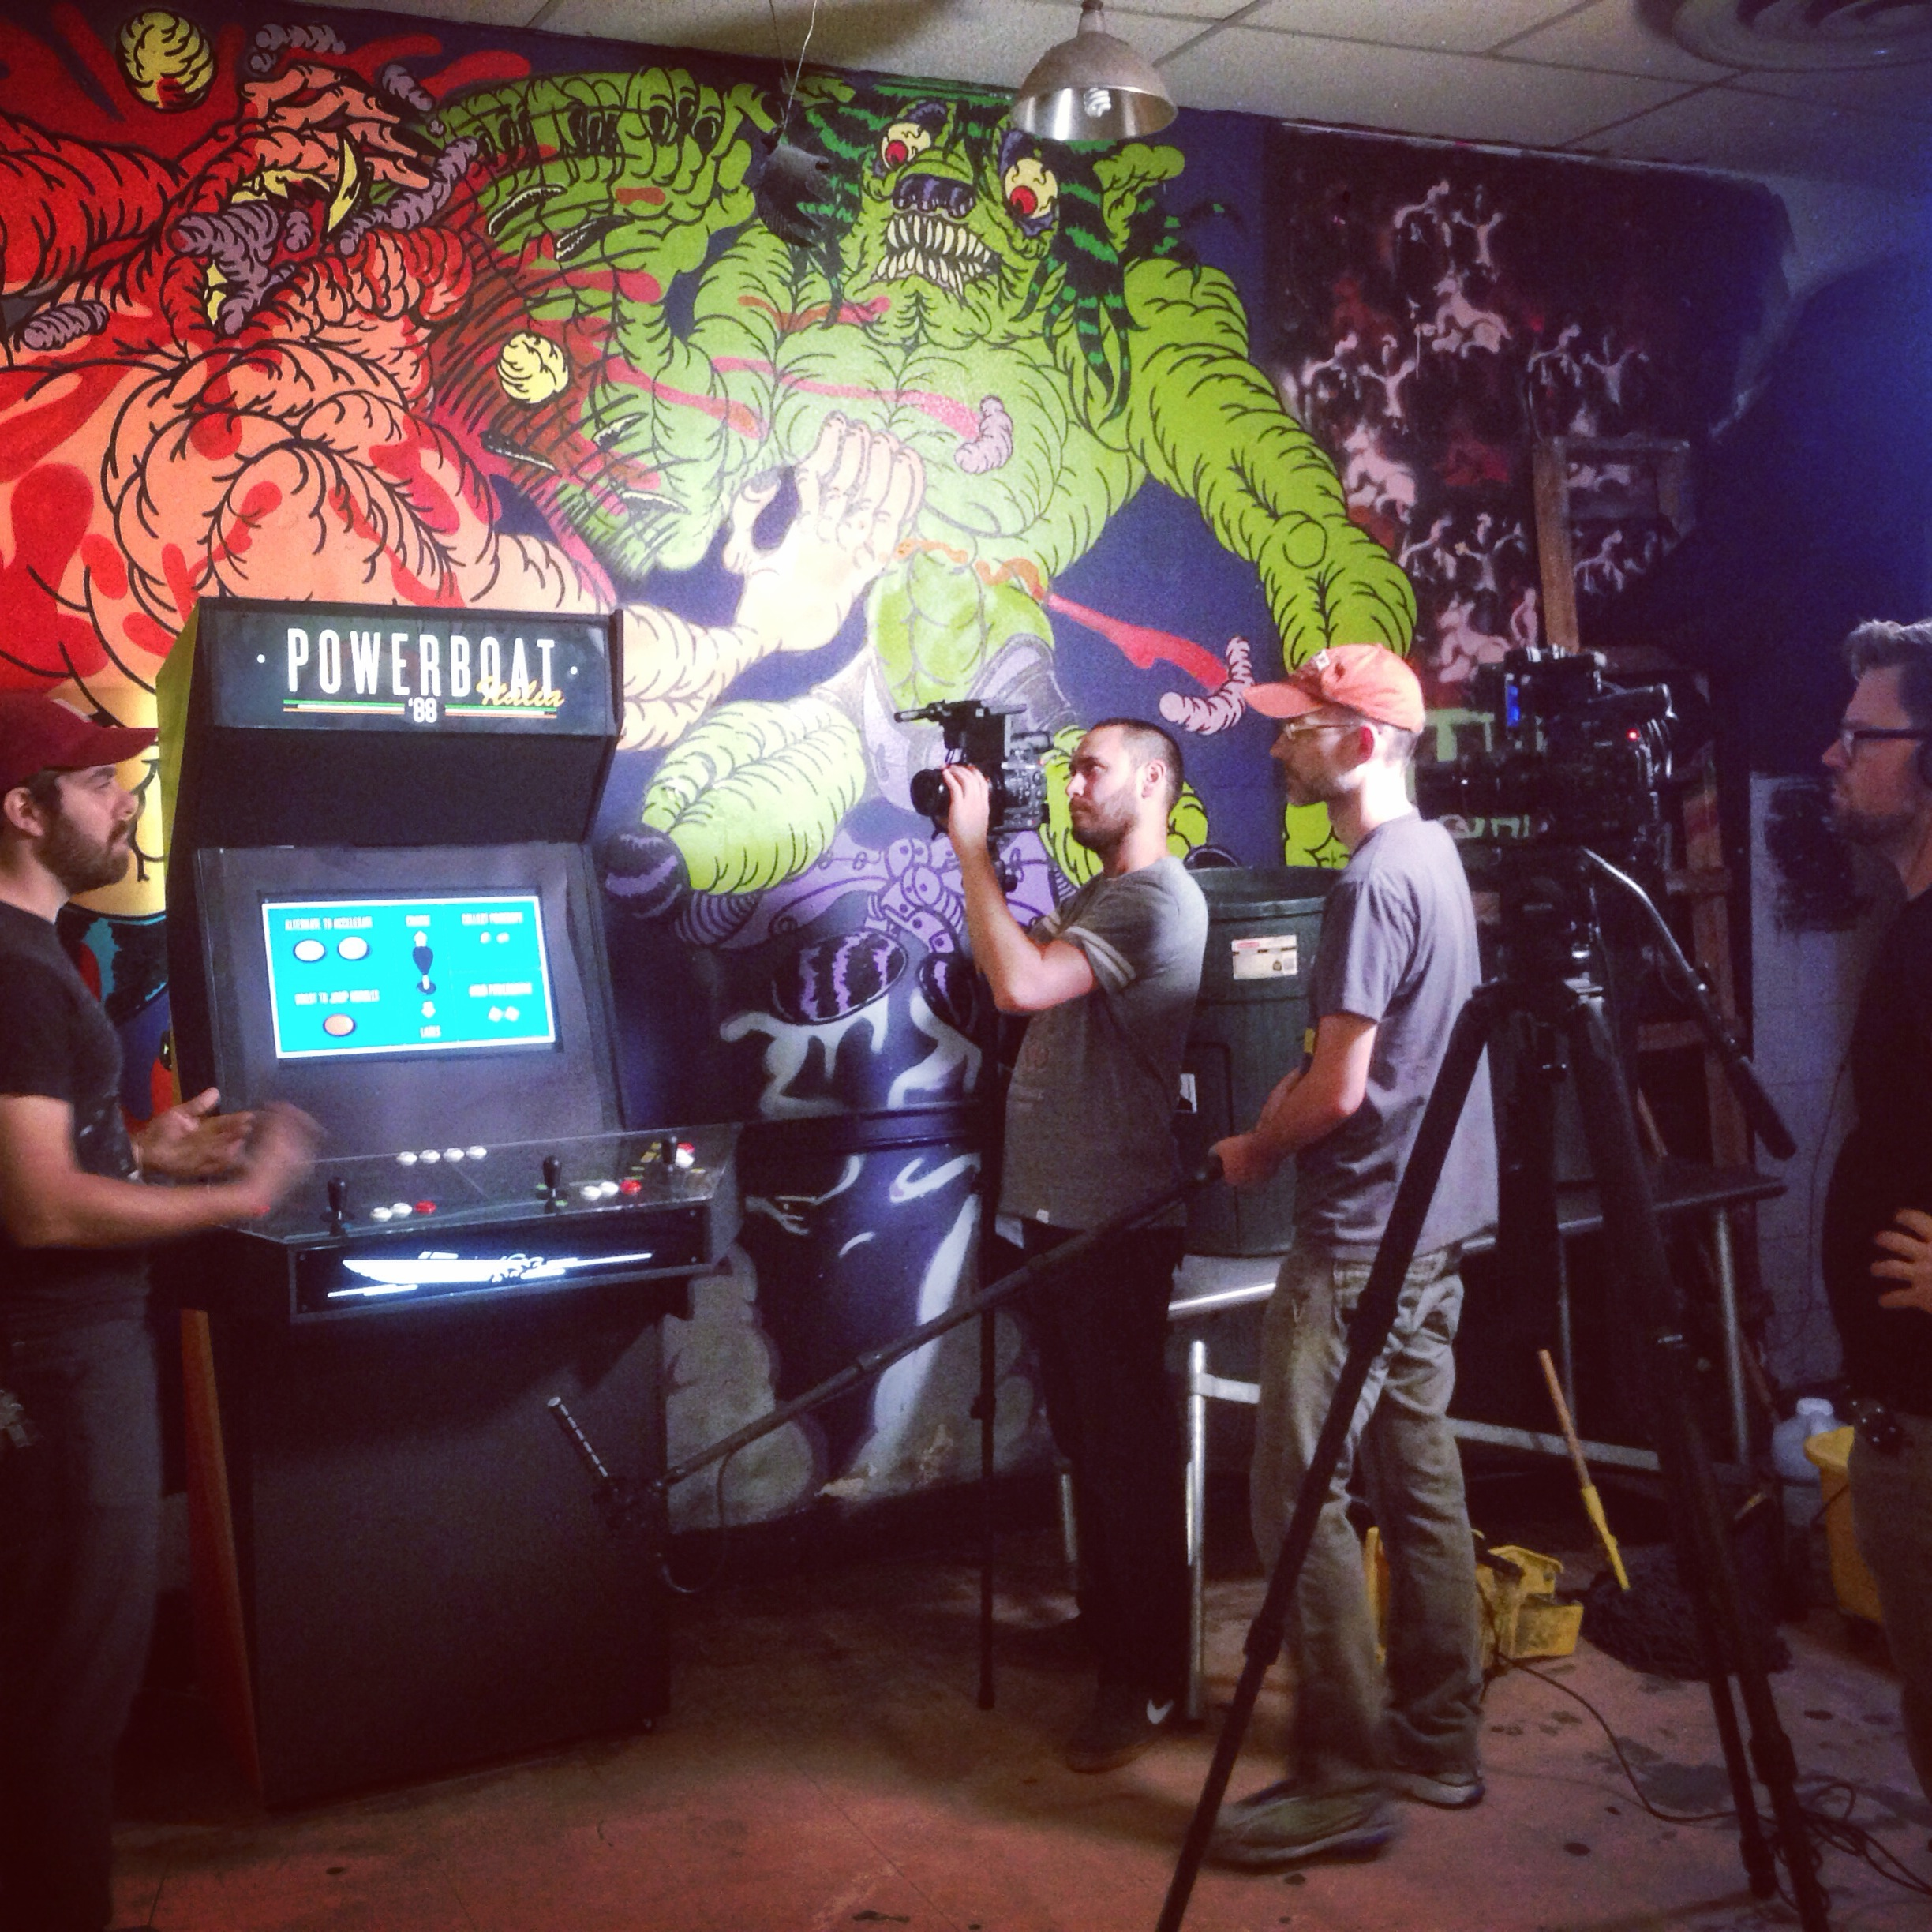 Death By Audio, an event space and art gallery that commissions one-of-a-kind games and arcade cabinets that then go on display elsewhere in New York City.